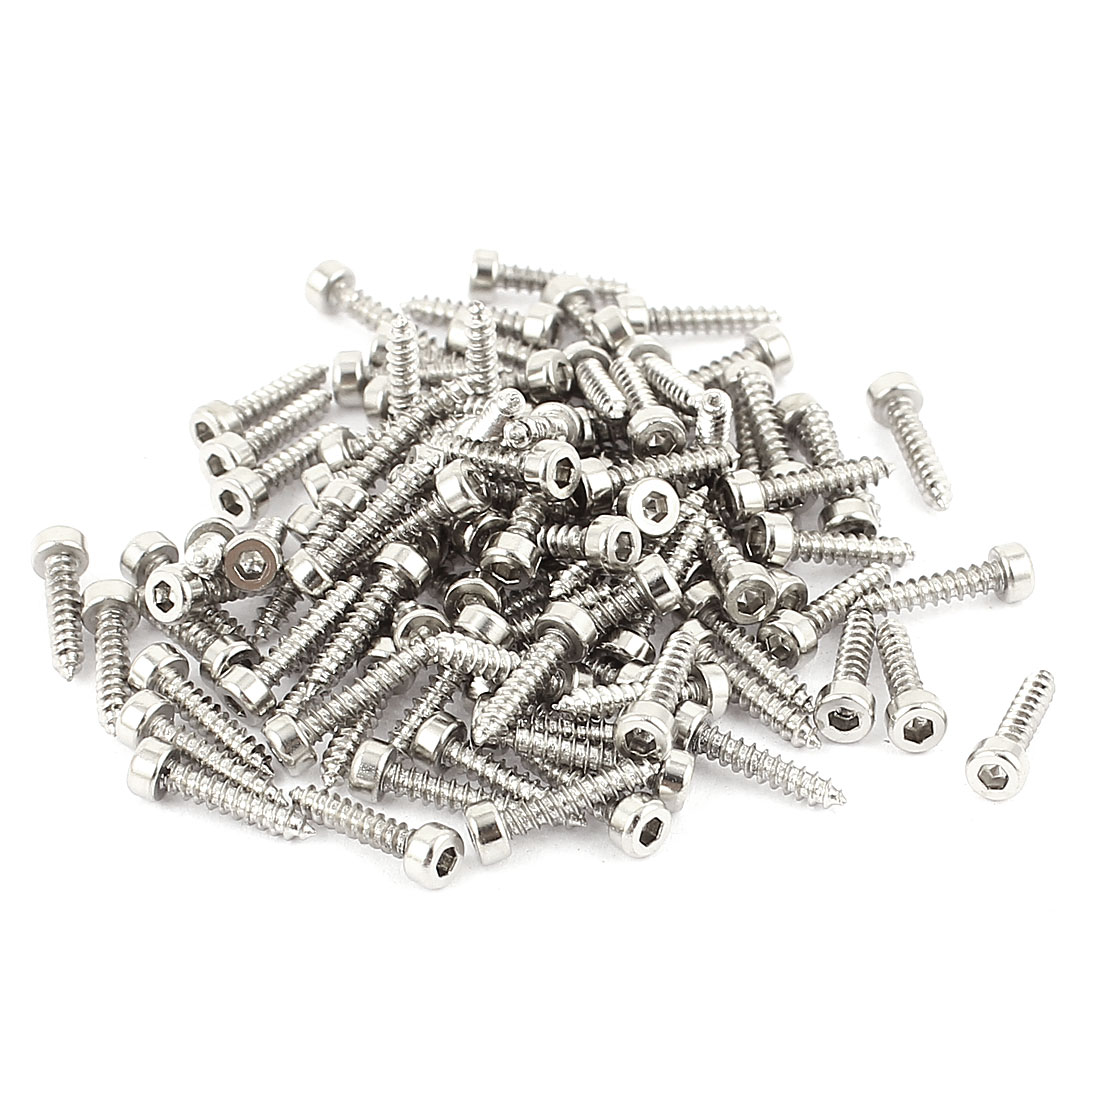 2mm x 10mm Full Thread Nickel Plated Hex Head Self Tapping Screws 100 Pcs